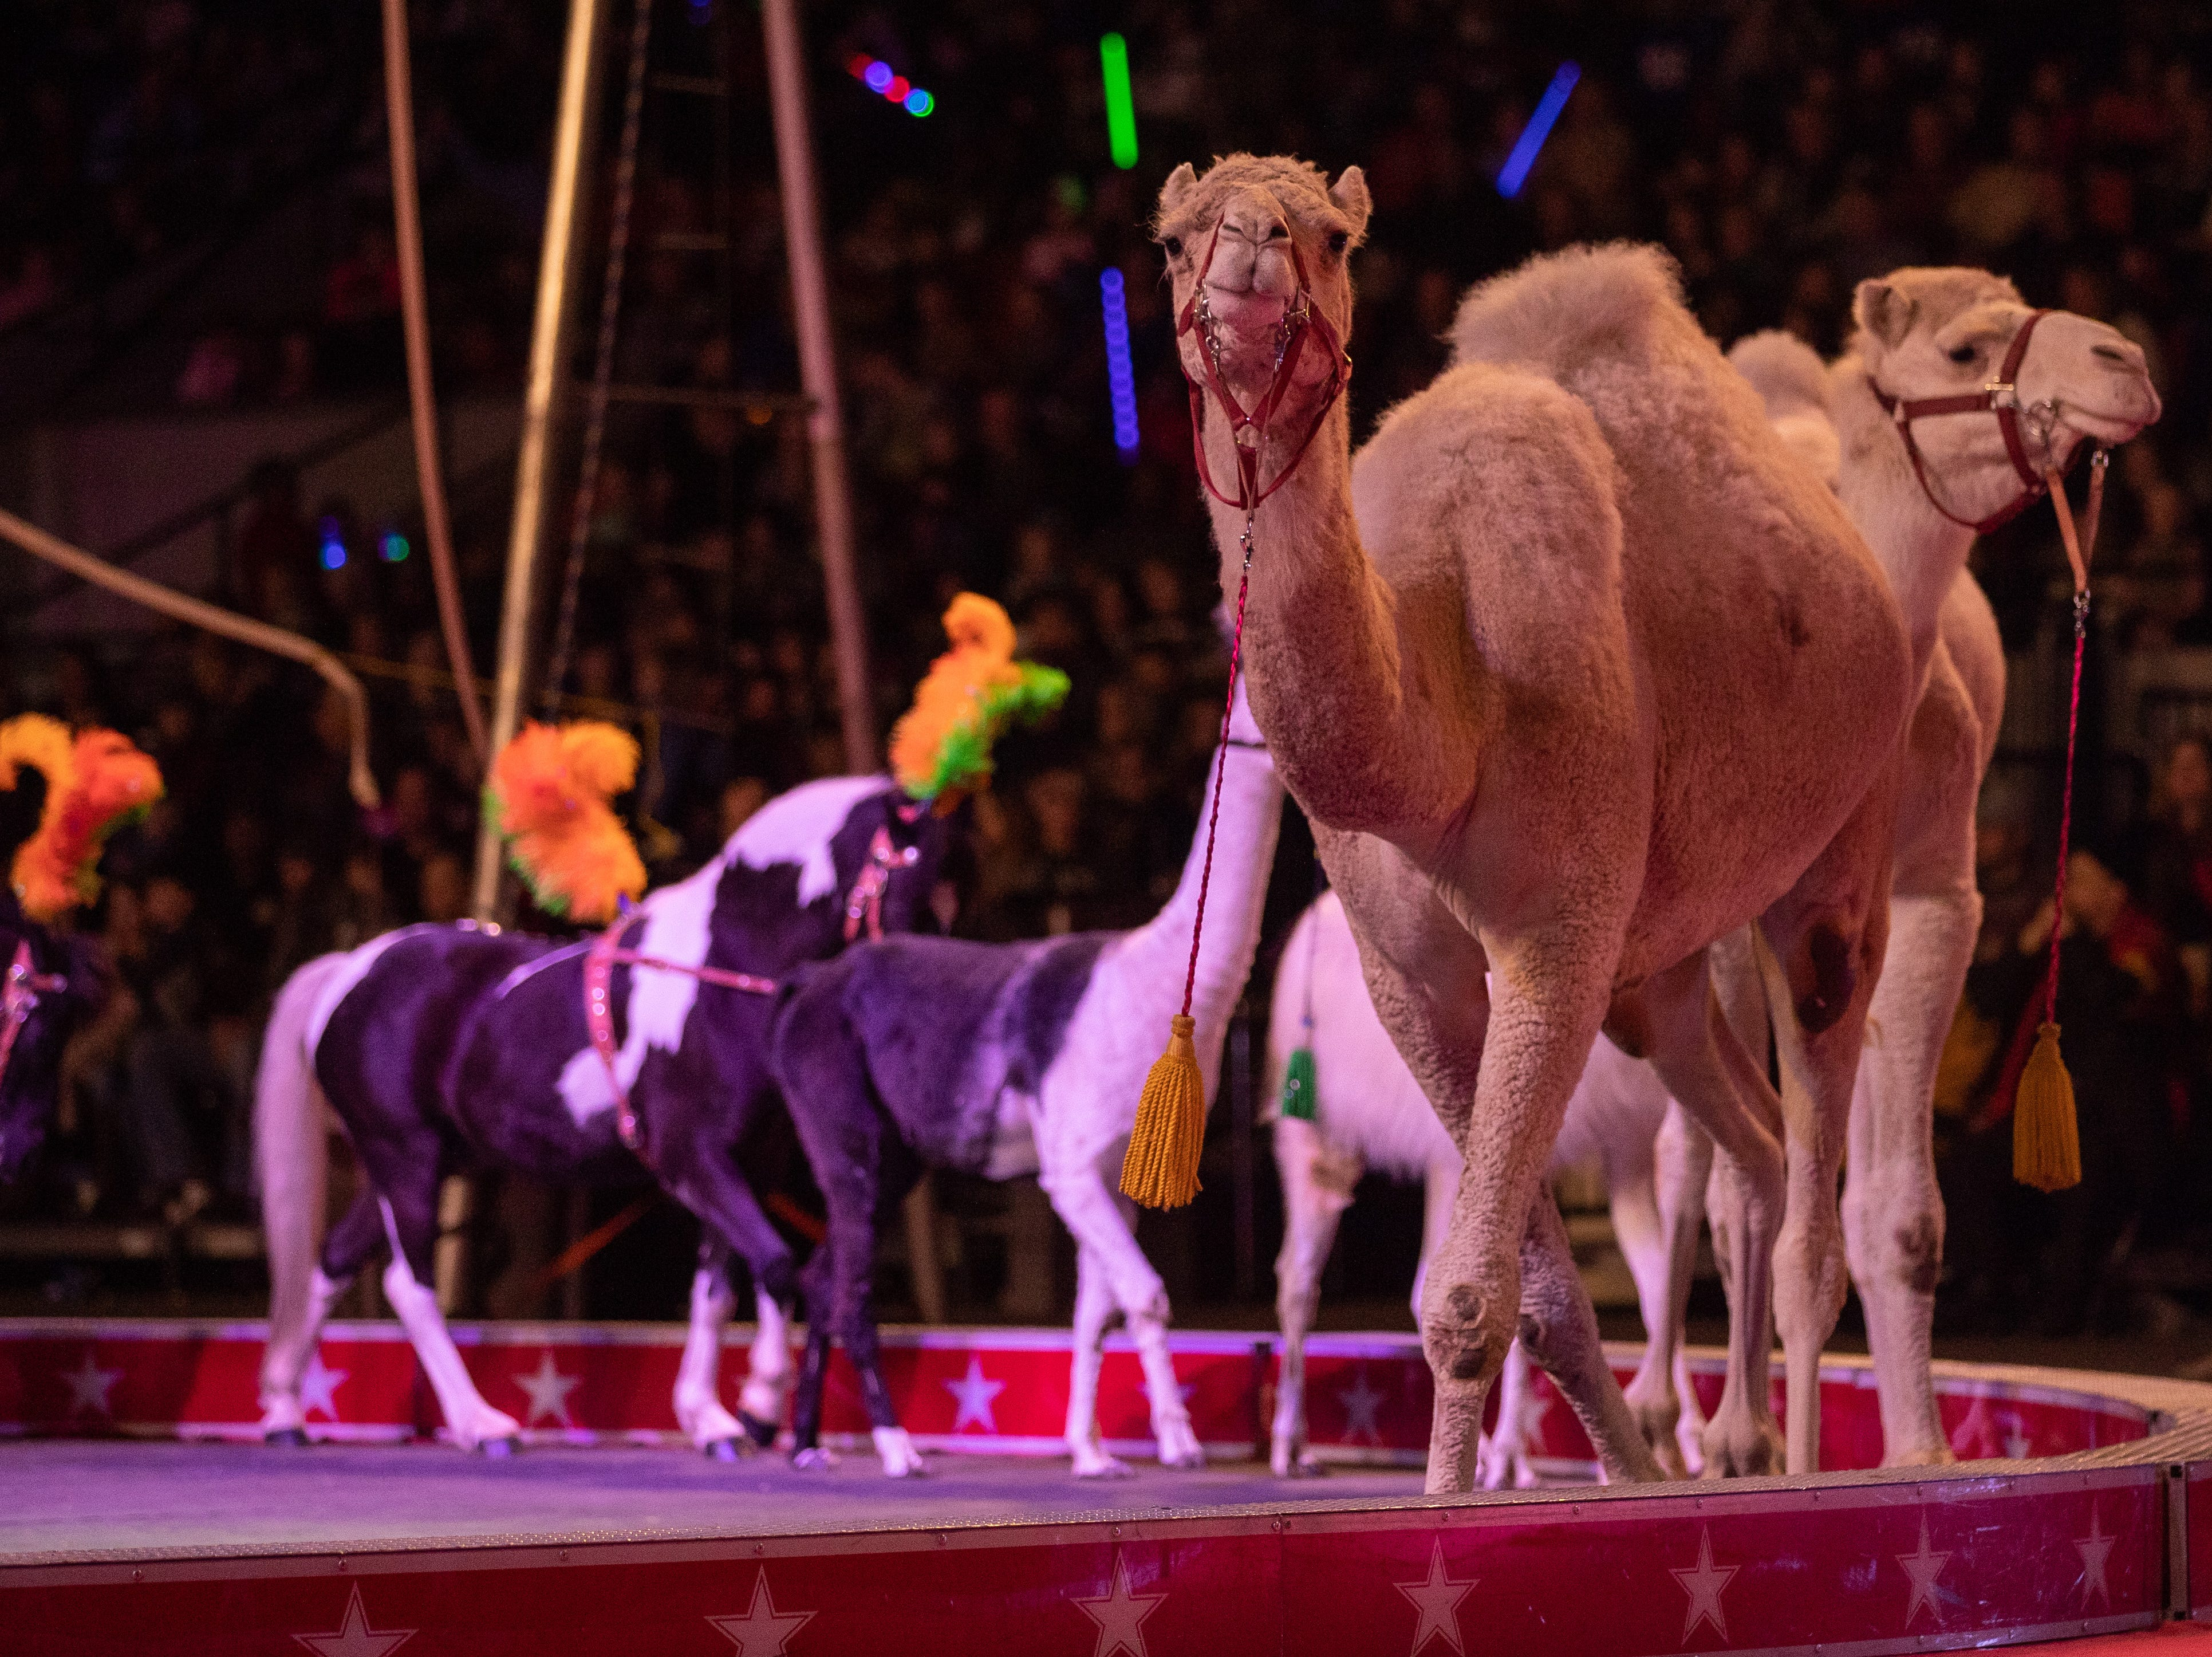 Camels lead a parade of animals in to the ring at the Kosair Shrine Circus, Saturday, Feb. 9, 2019 in Louisville Ky.